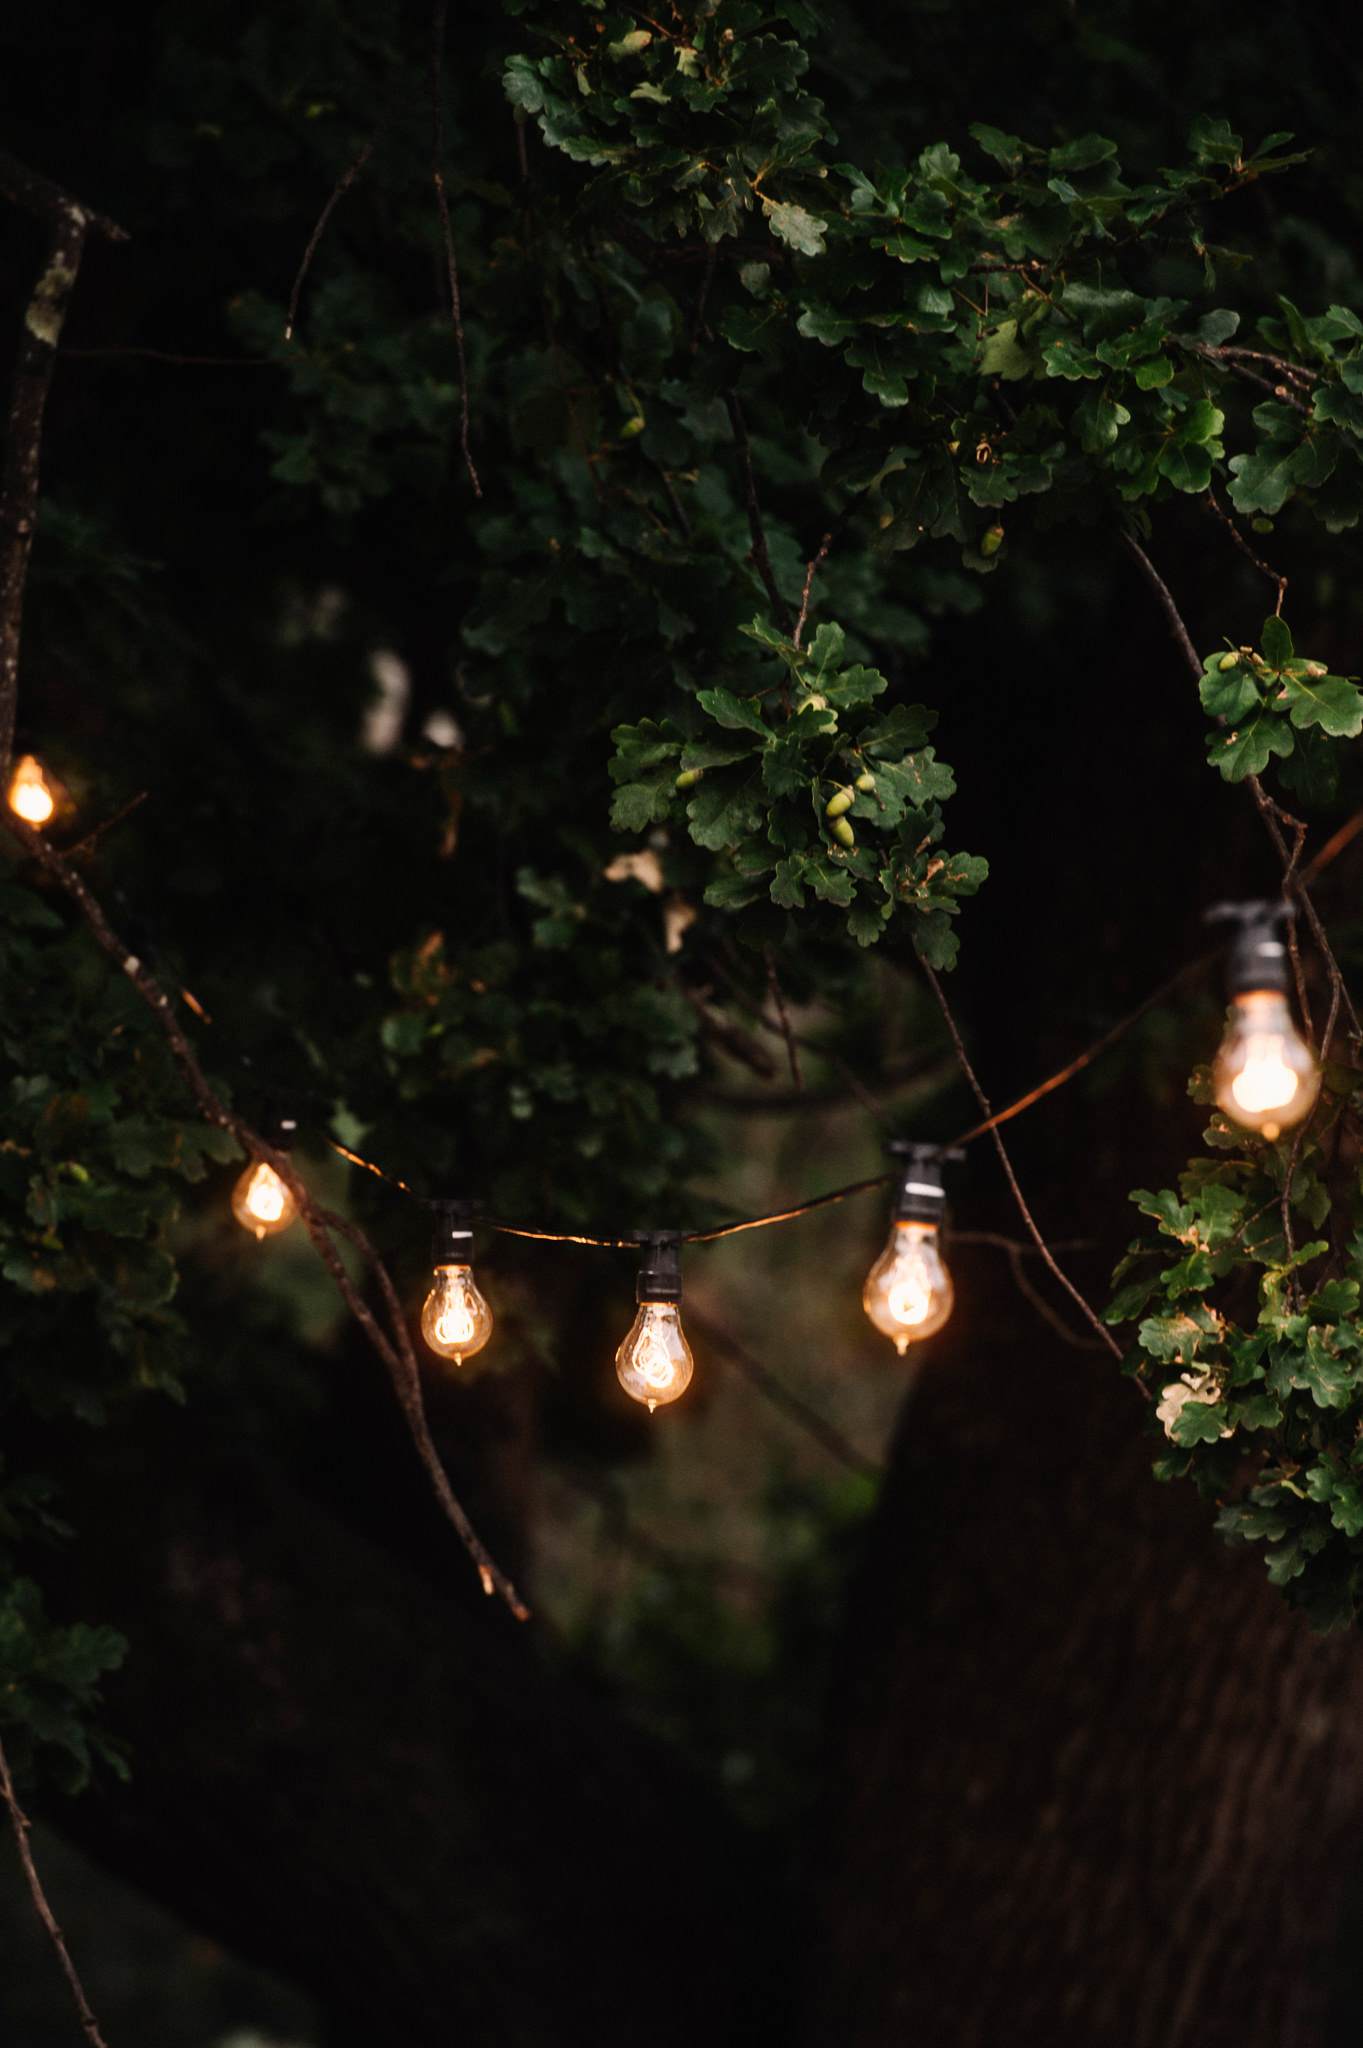 Festoon lighting in the trees around the marquee at Entally Estate